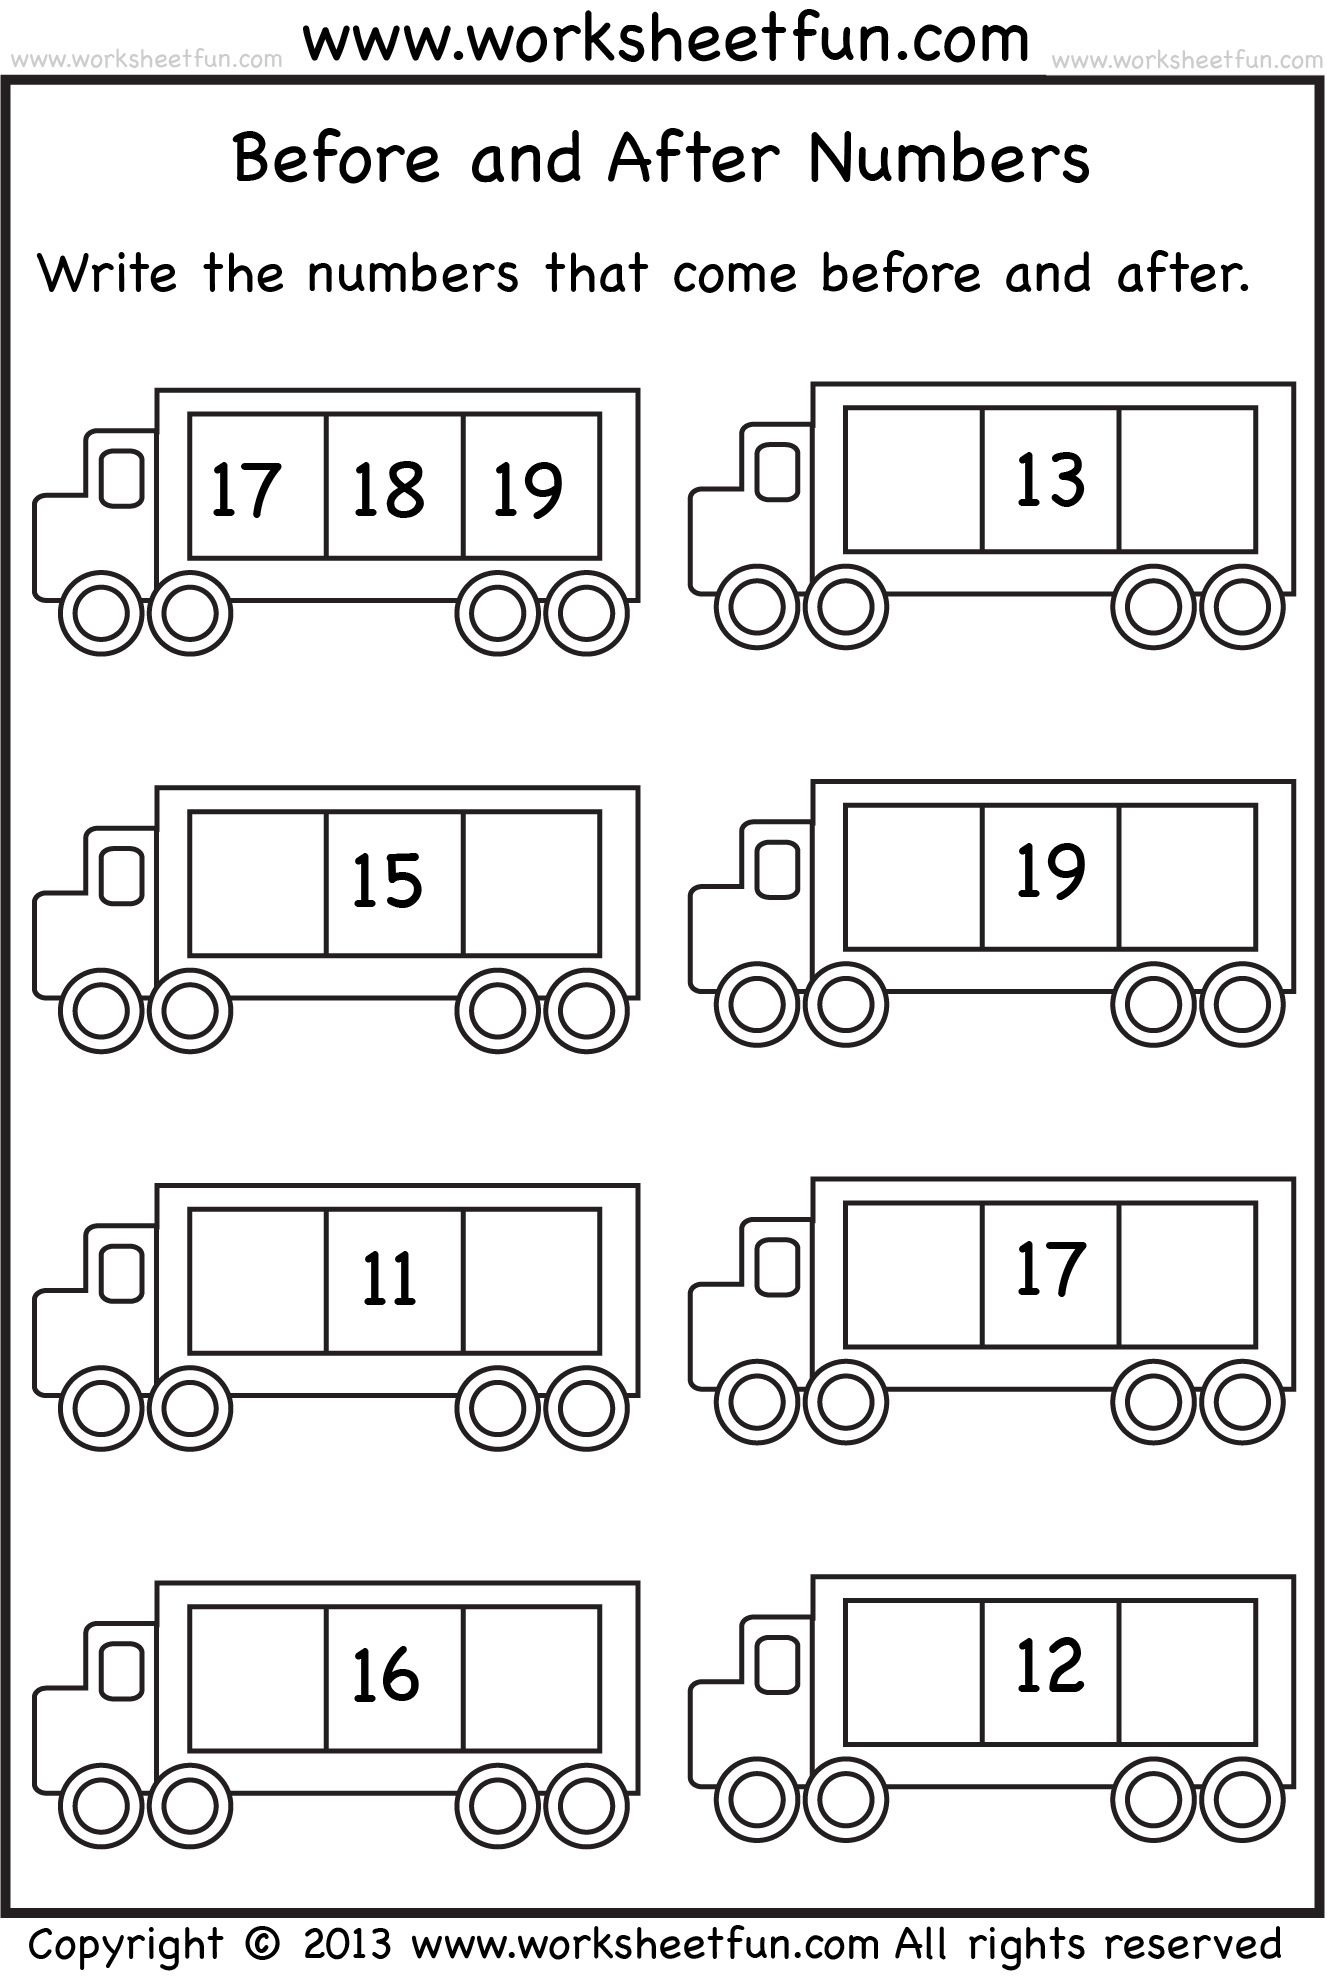 Order of numbers | Math | Pinterest | Math, Worksheets and School